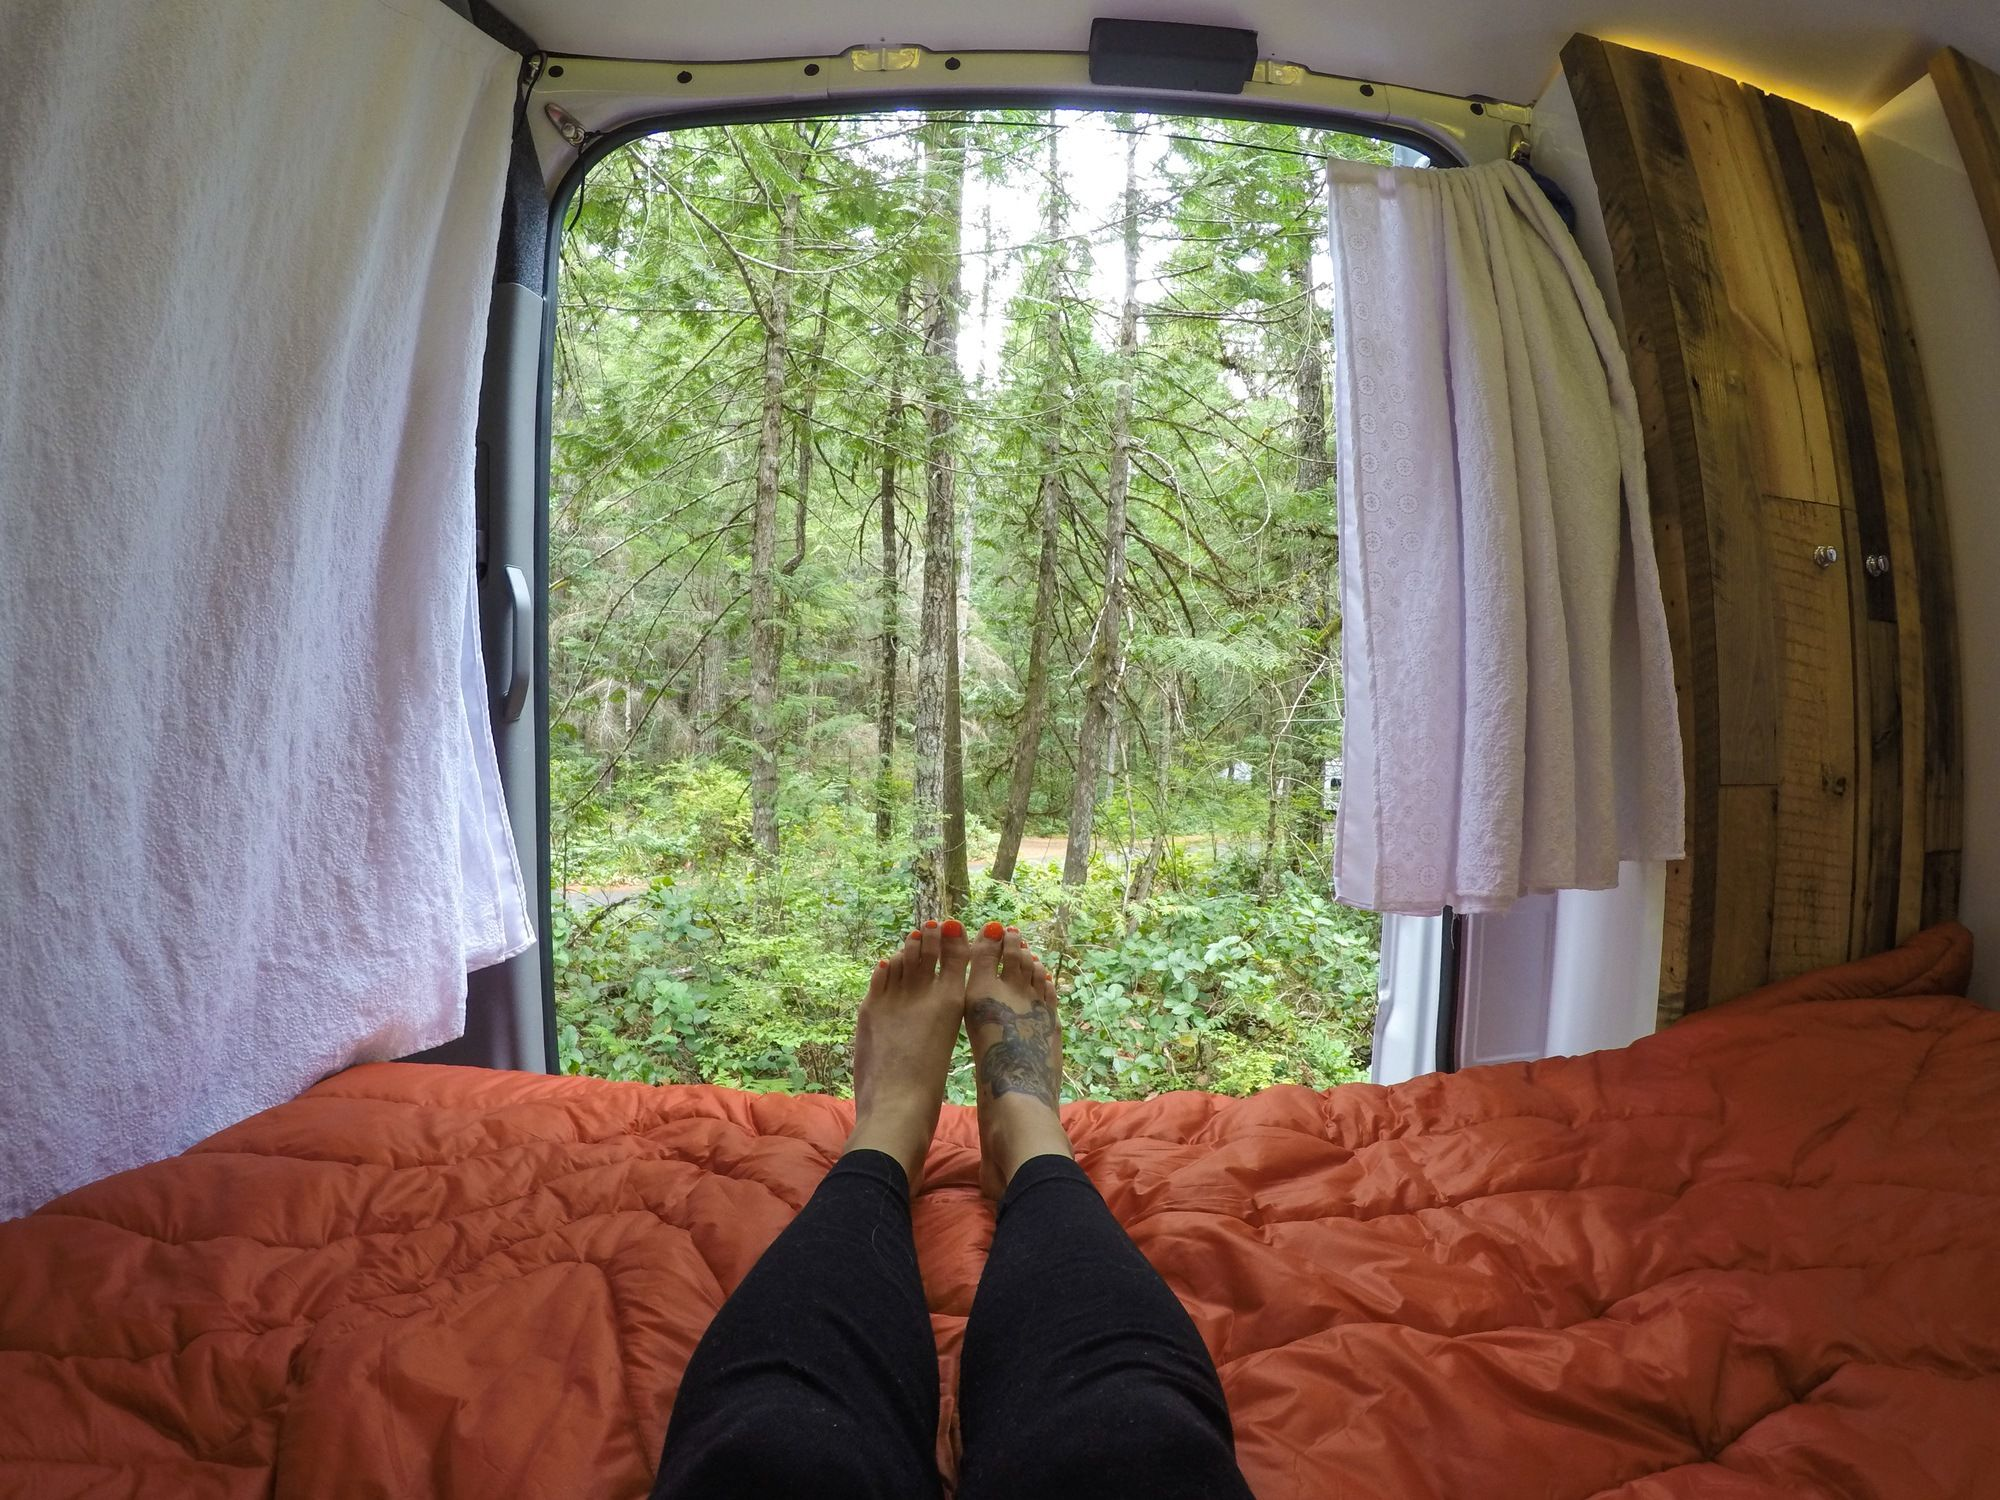 The Best Outdoor Gifts For Van Lifers